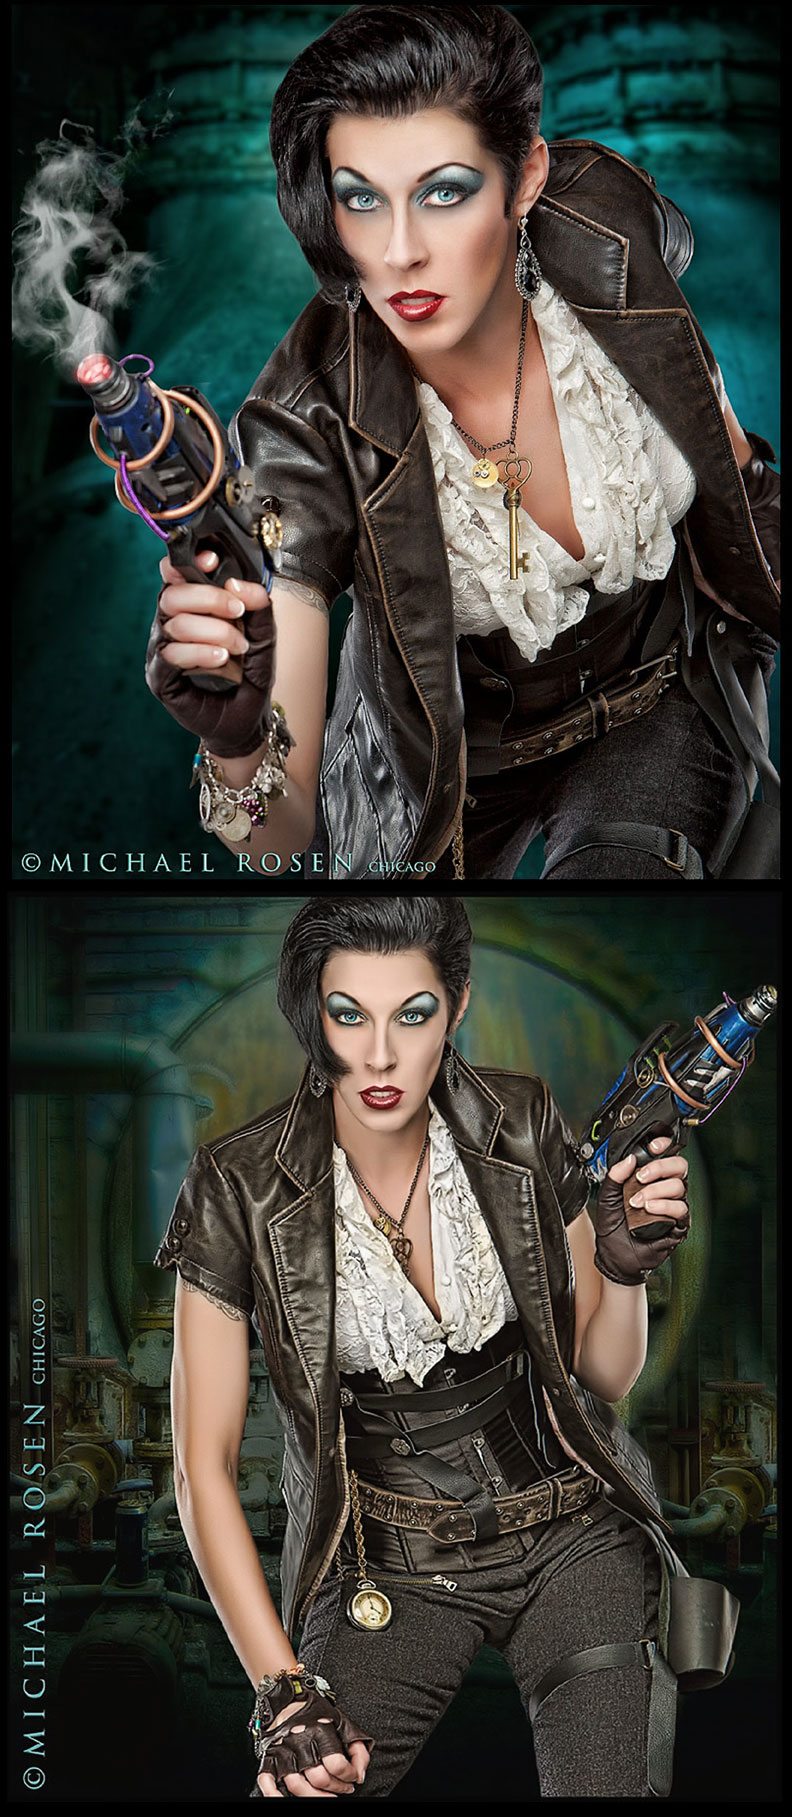 Michael Rosen Studio - Chicago May 26, 2012 Michael Rosen - Chicago Twig Noir - Sexy Gun Slinger